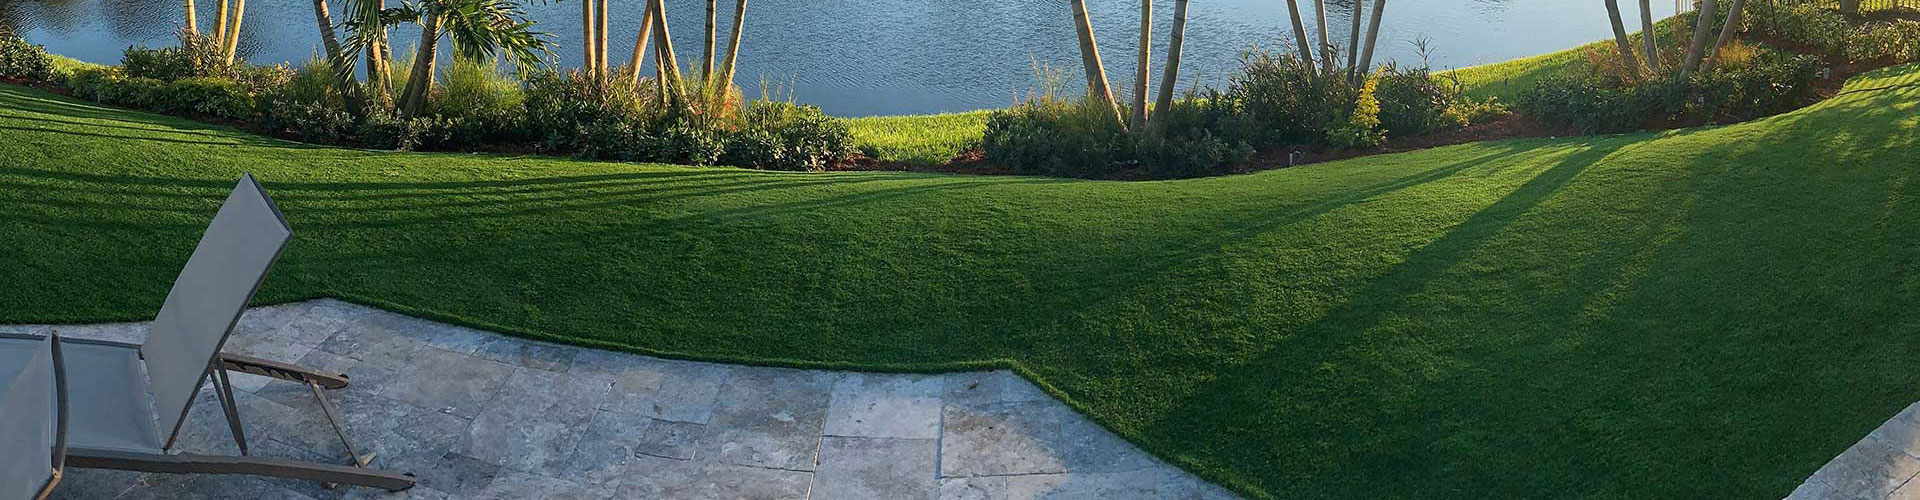 Boca Raton Artificial Grass Installation, Putting Greens Installation and Synthetic Turf Installation